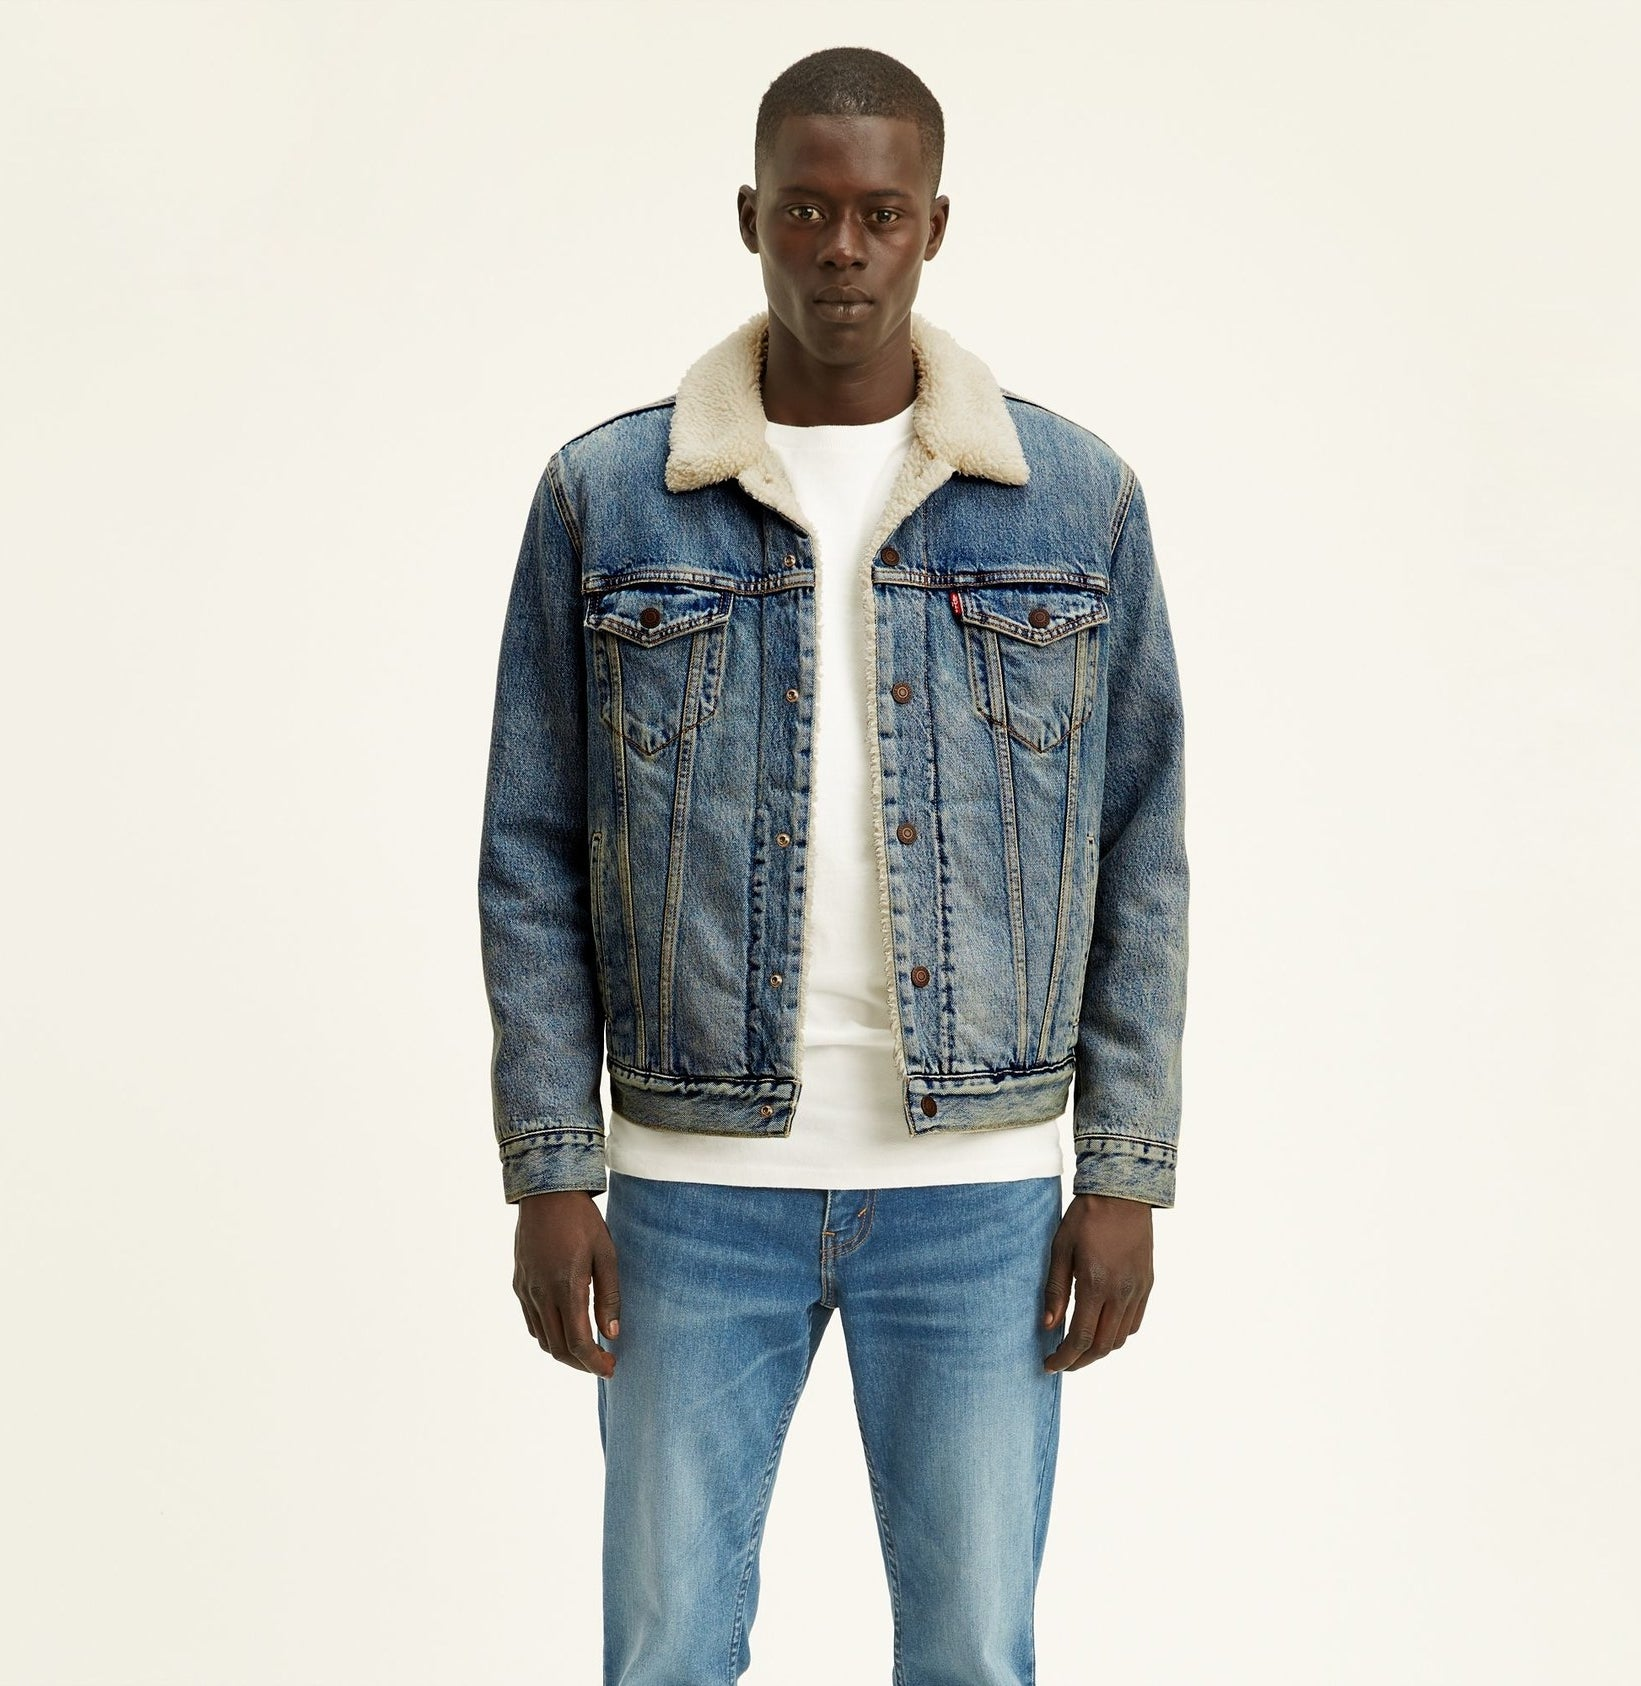 Model wearing the light wash denim jacket with a sherpa collar and lining